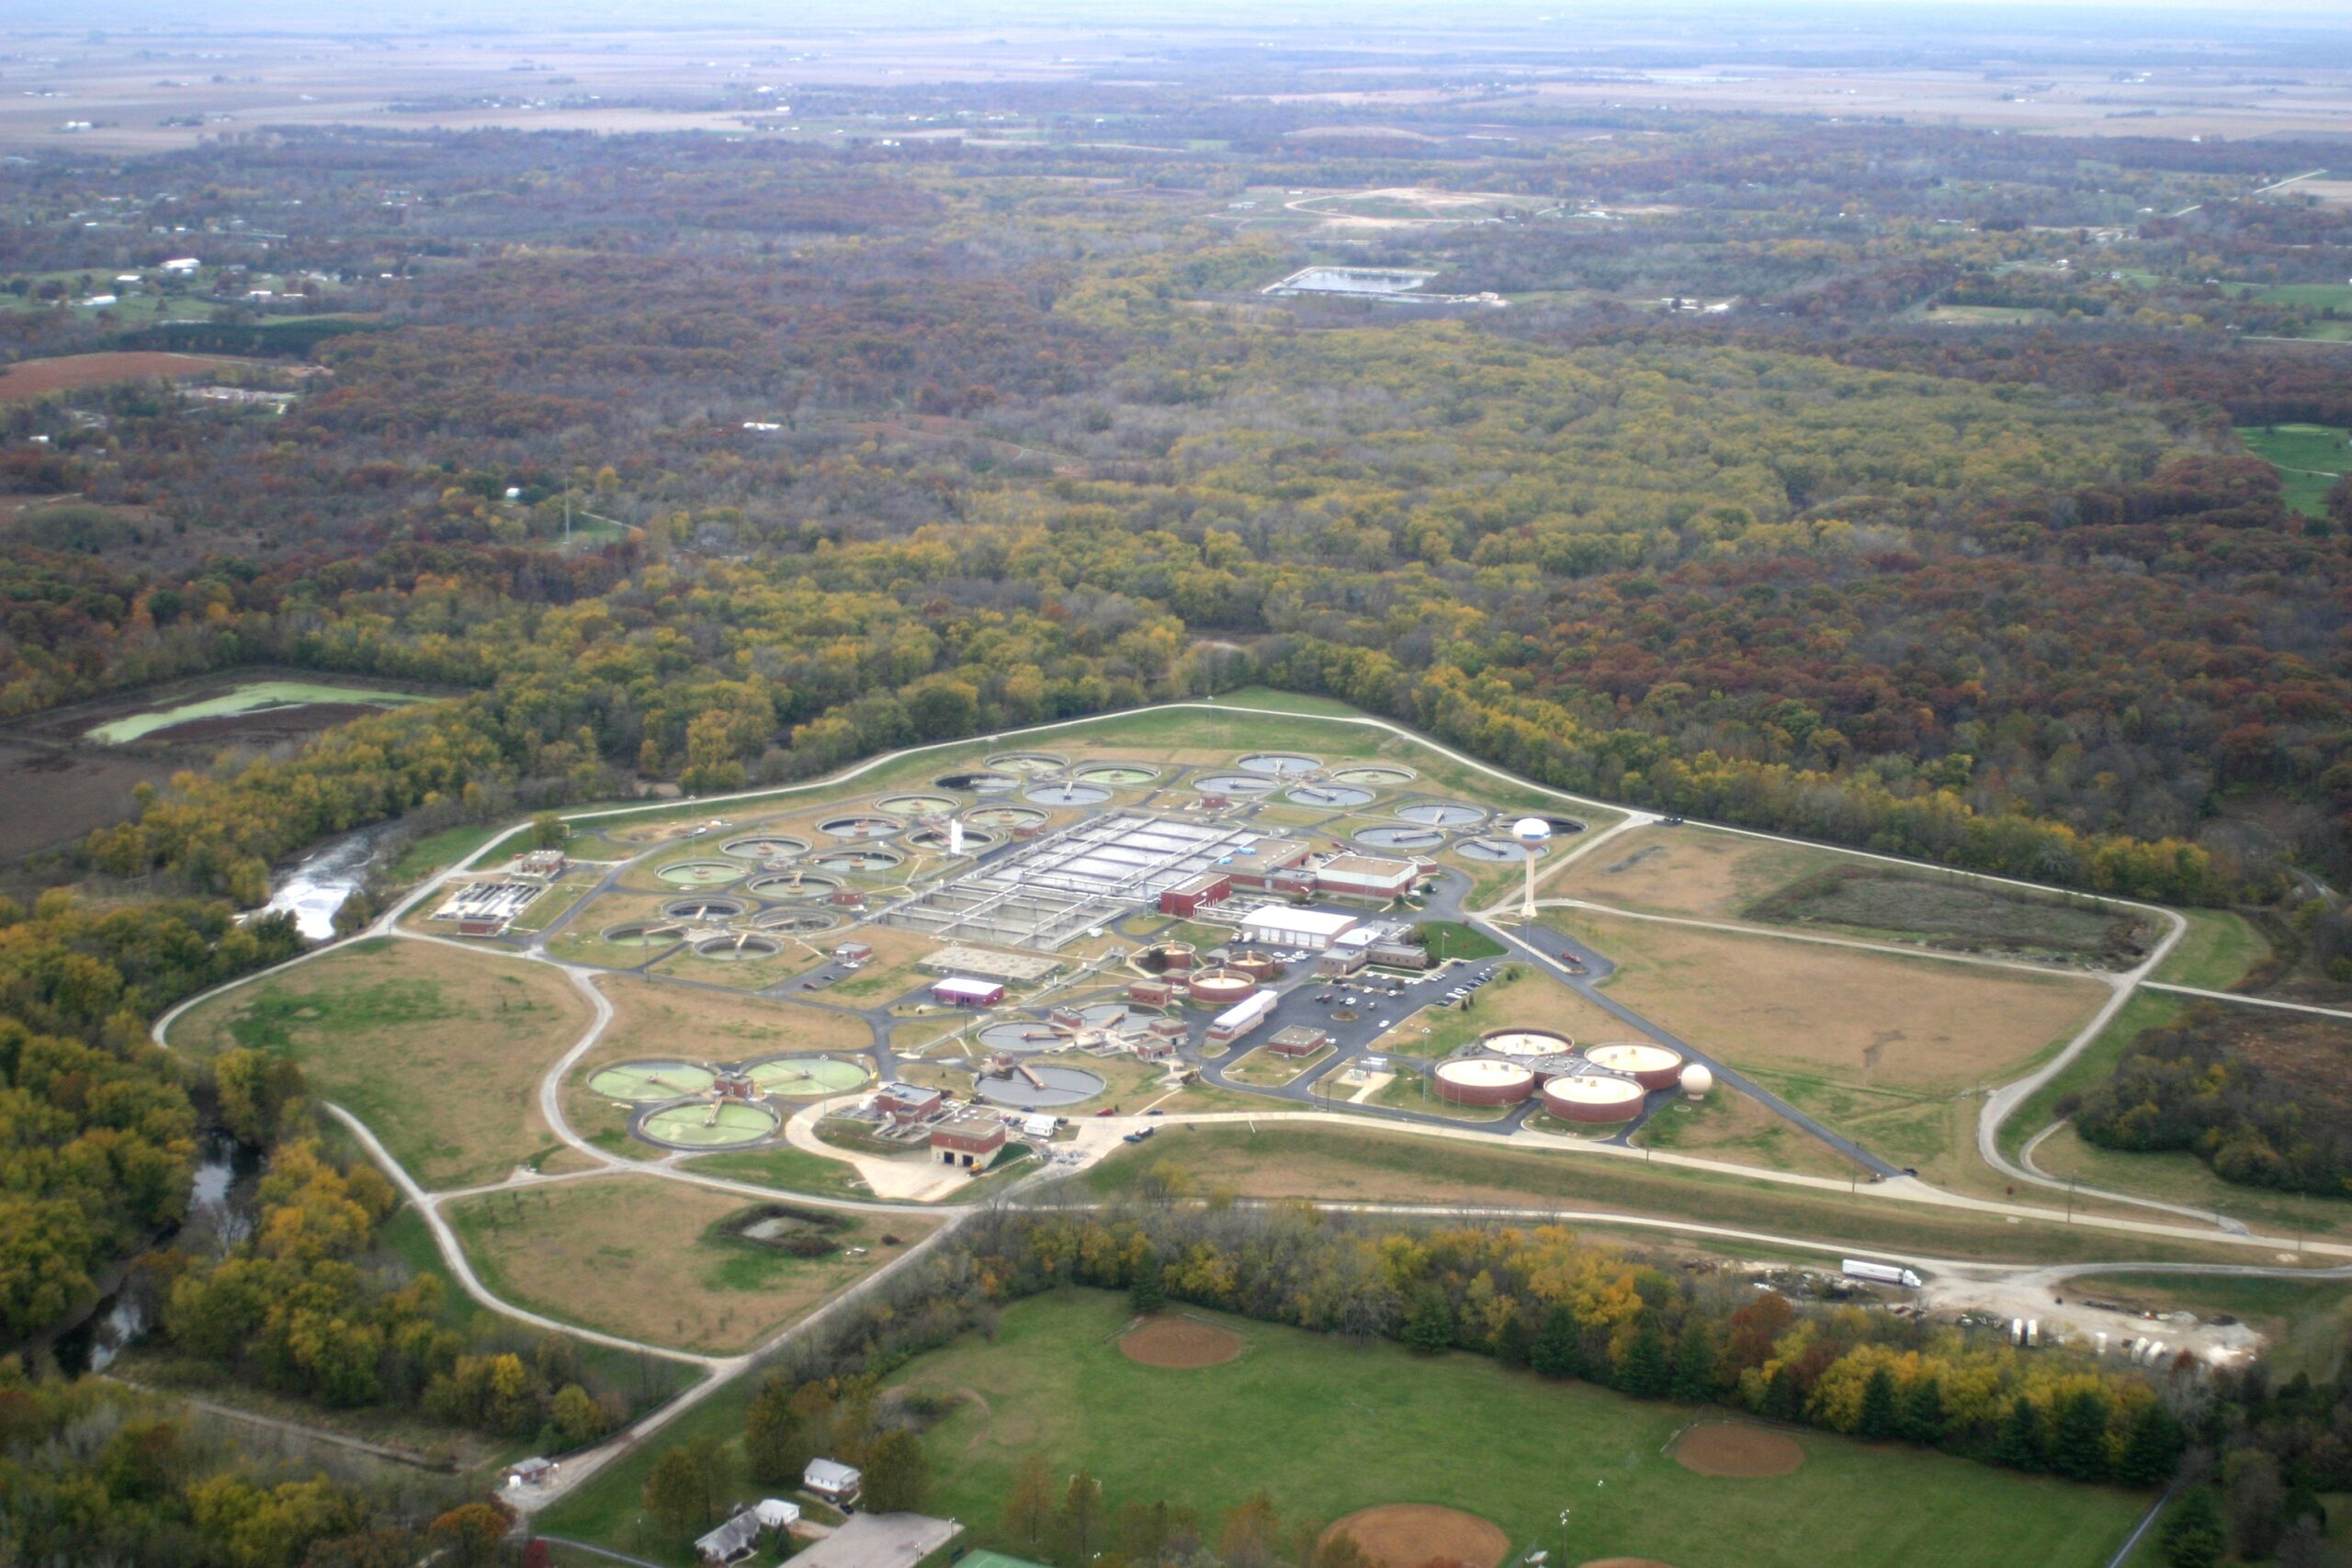 Aerial View of the Sanitary District of Decatur Wastewater Treatment Plant